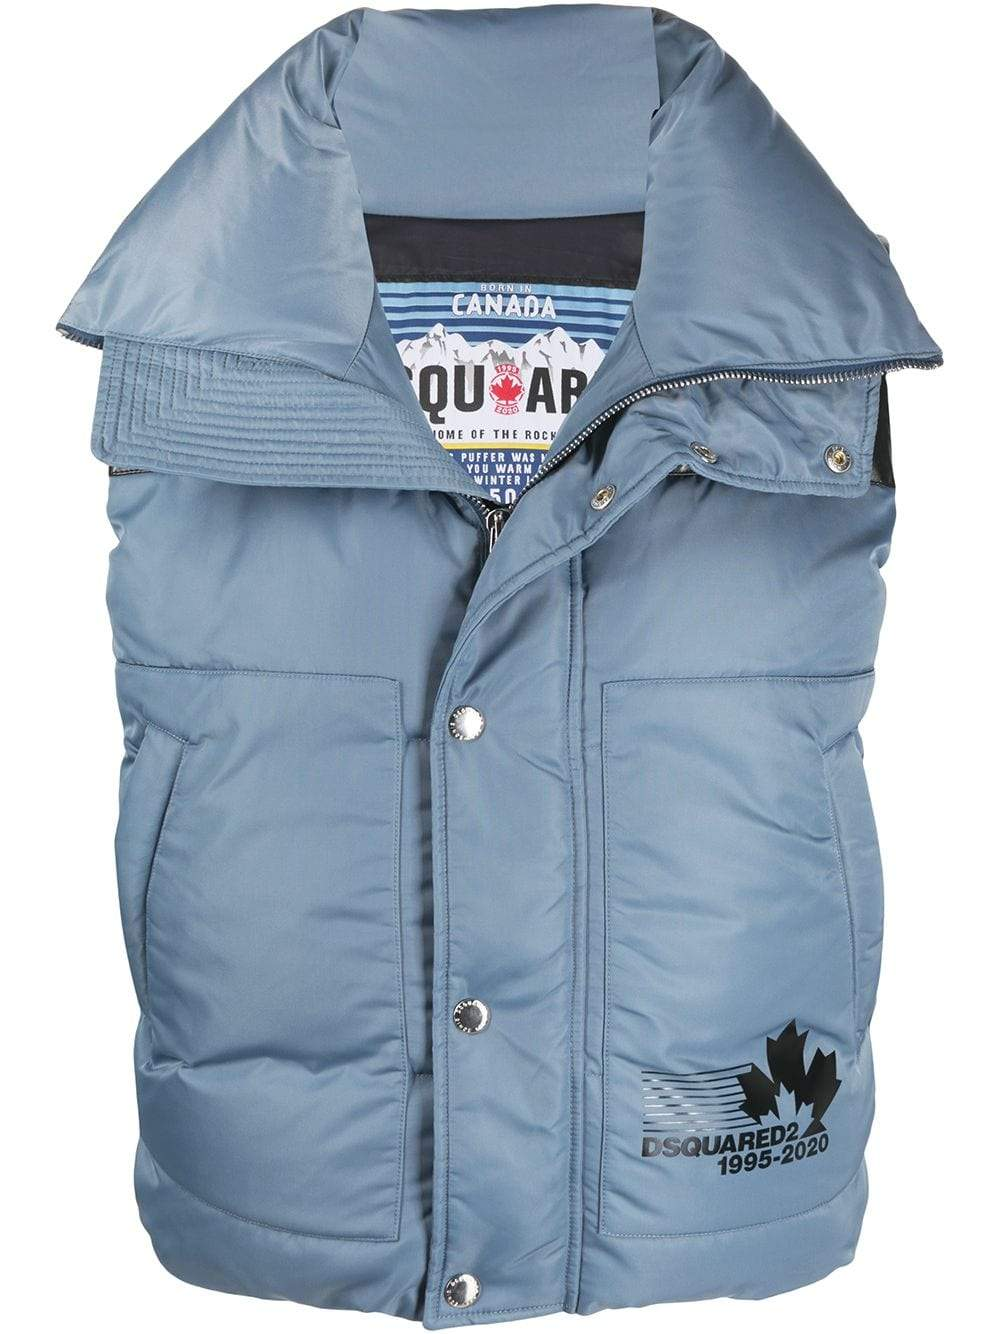 DSQUARED2 Logo Colour Block Gilet - Maison De Fashion